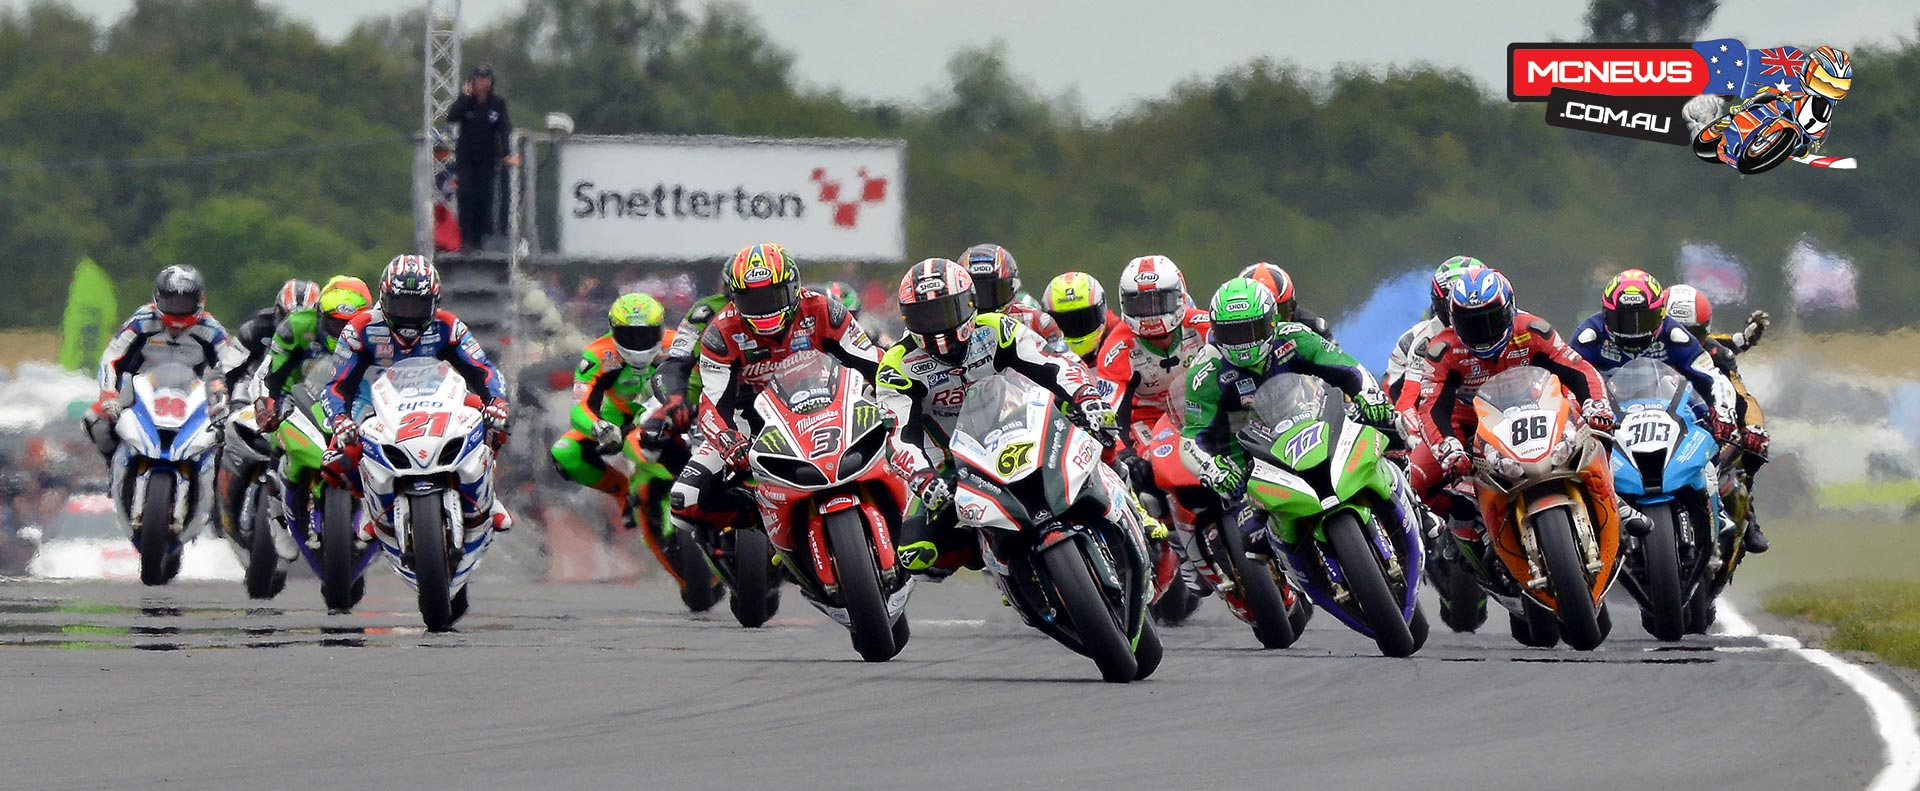 Shane Byrne did the double at Snetterton in 2014